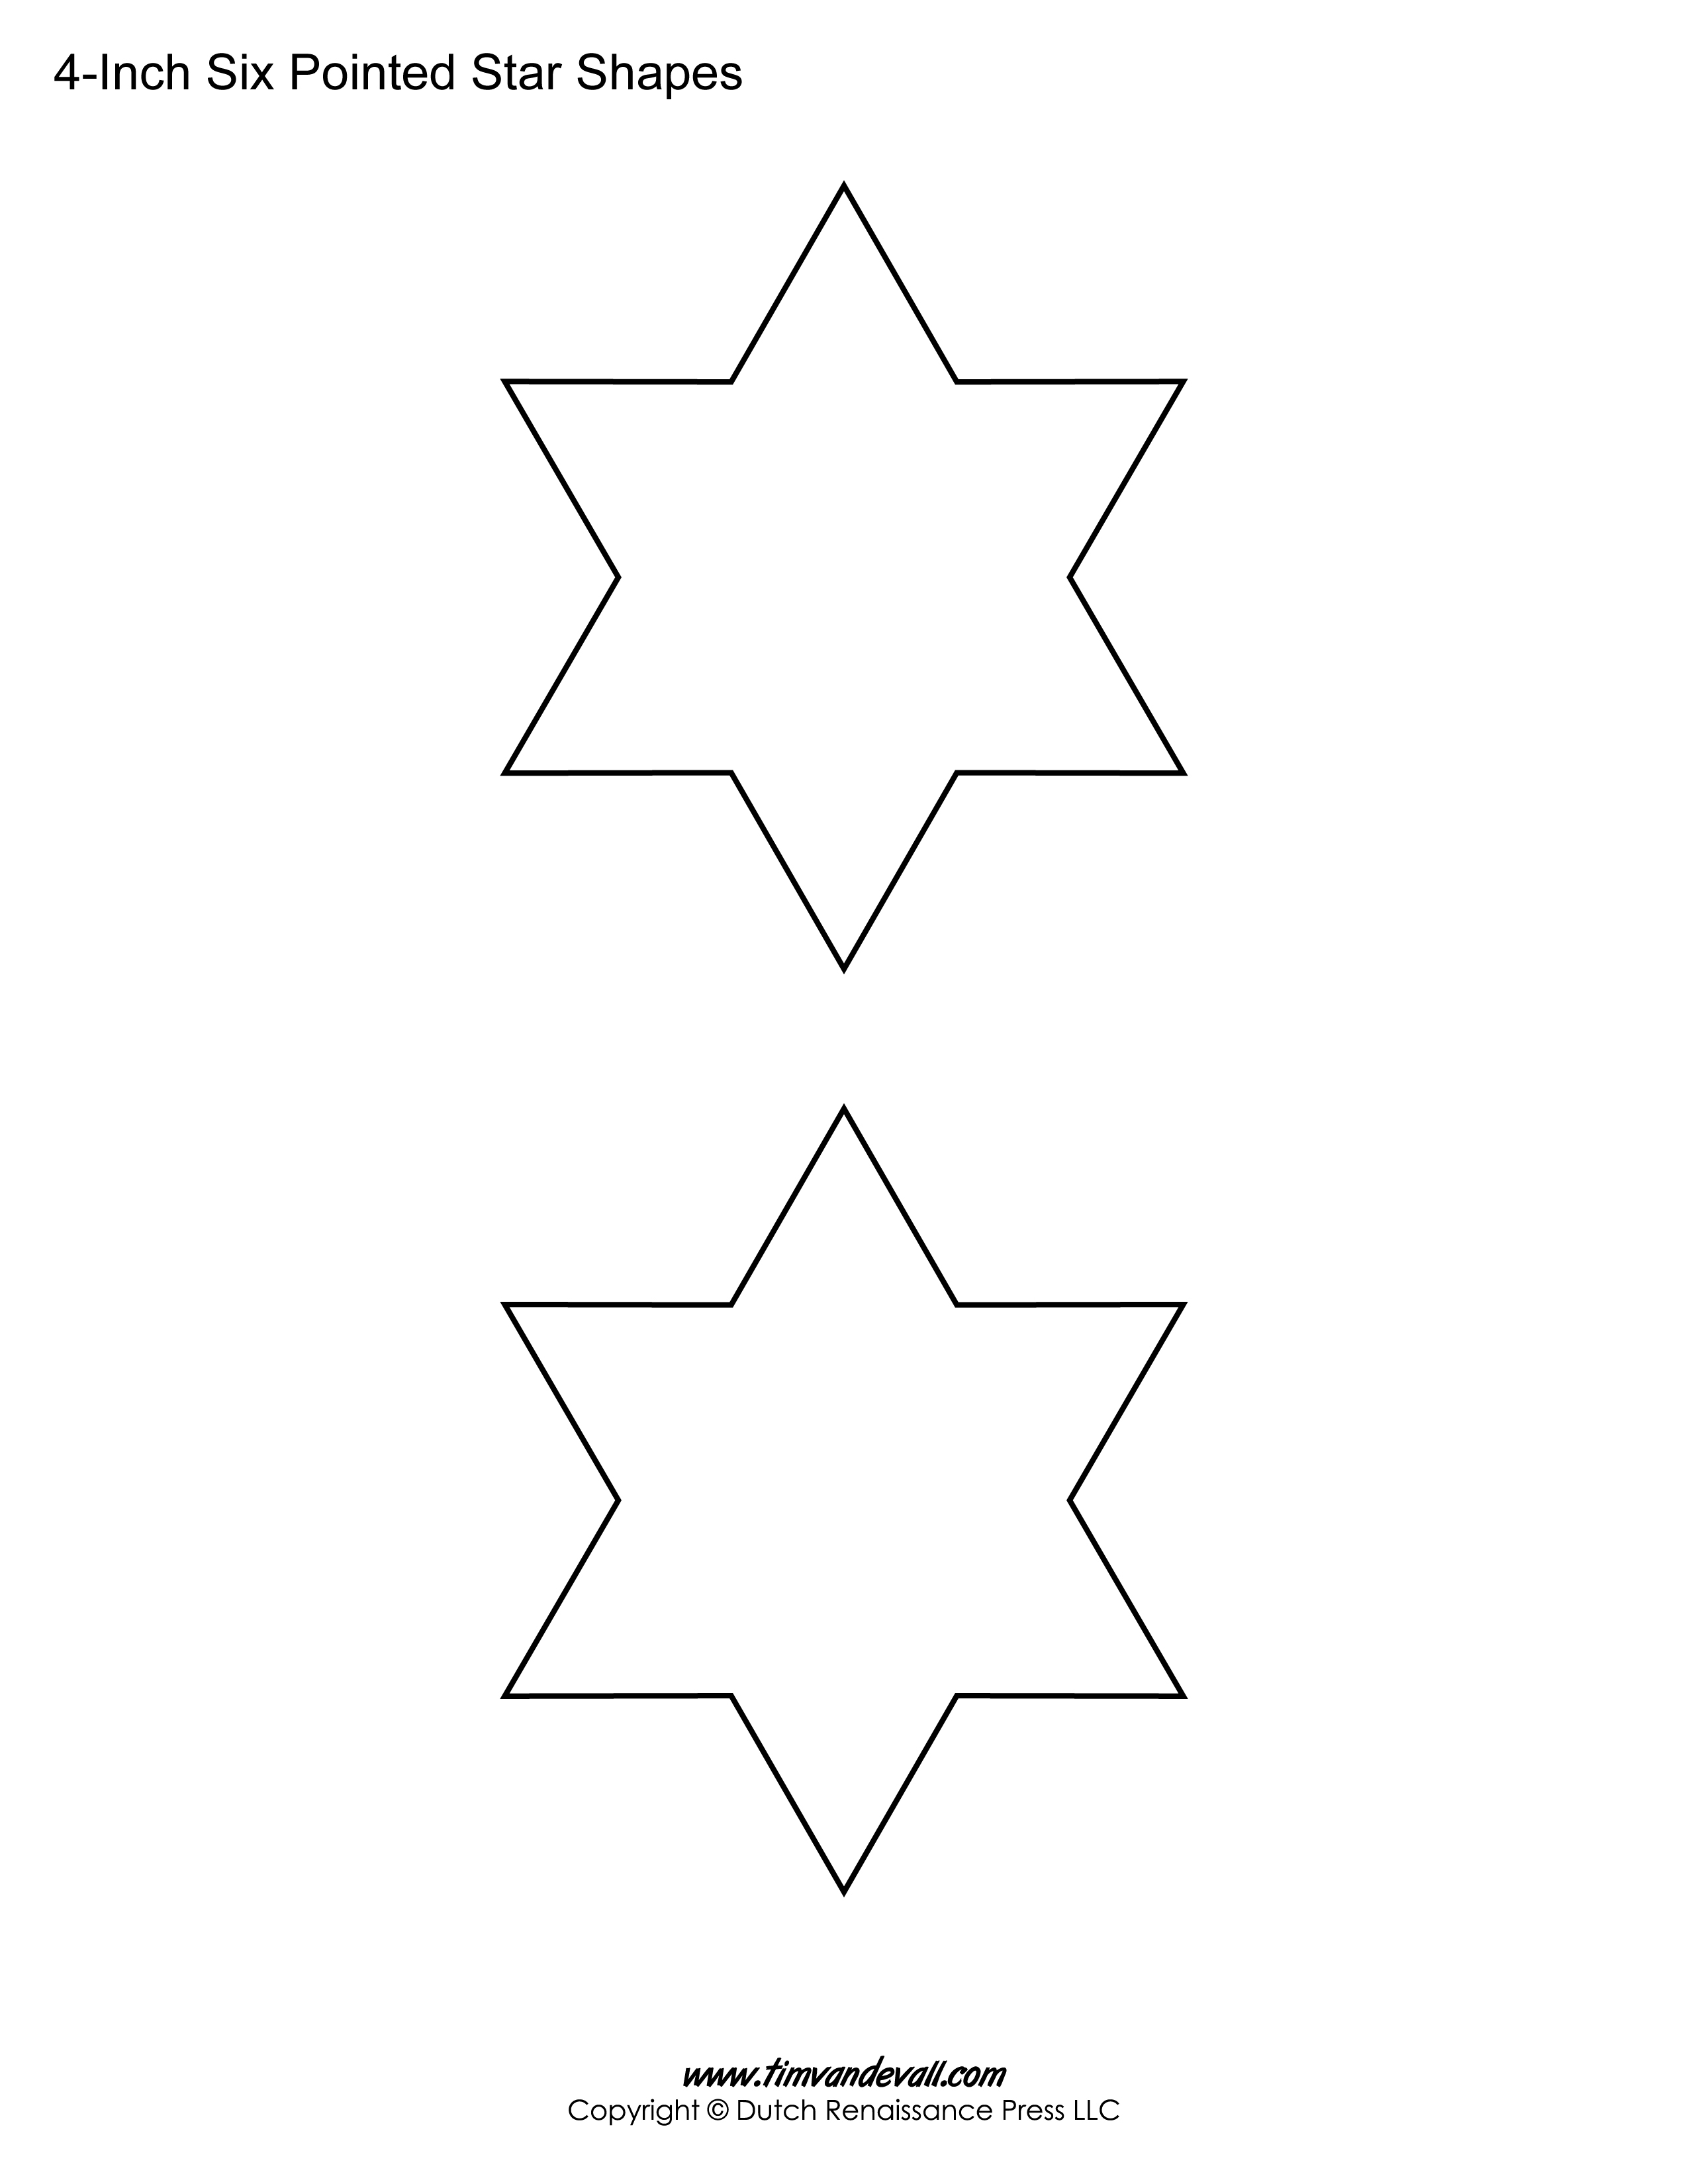 Printable Six Pointed Star Templates | Blank Shape Pdf Downloads - Printable Star Puzzle